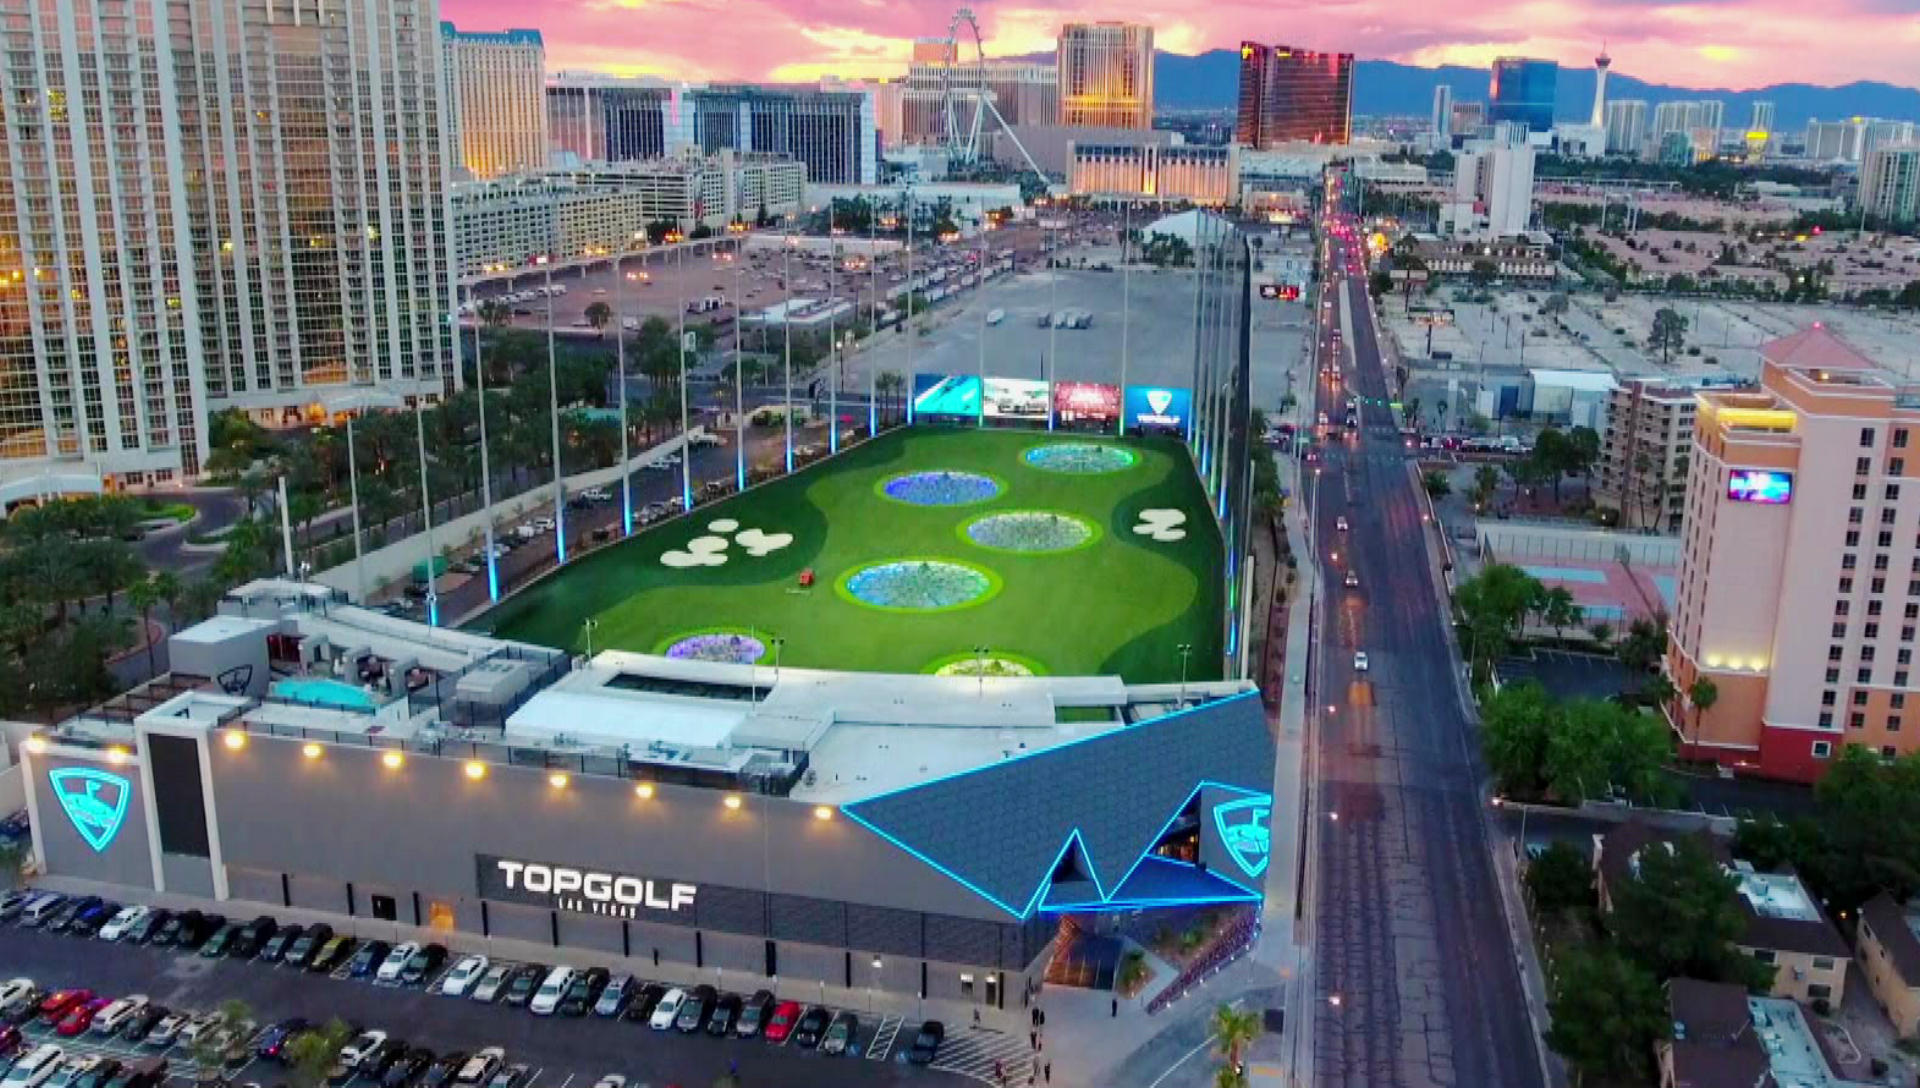 Topgolf | Experience the global sports entertainment venue that everybody's talking about